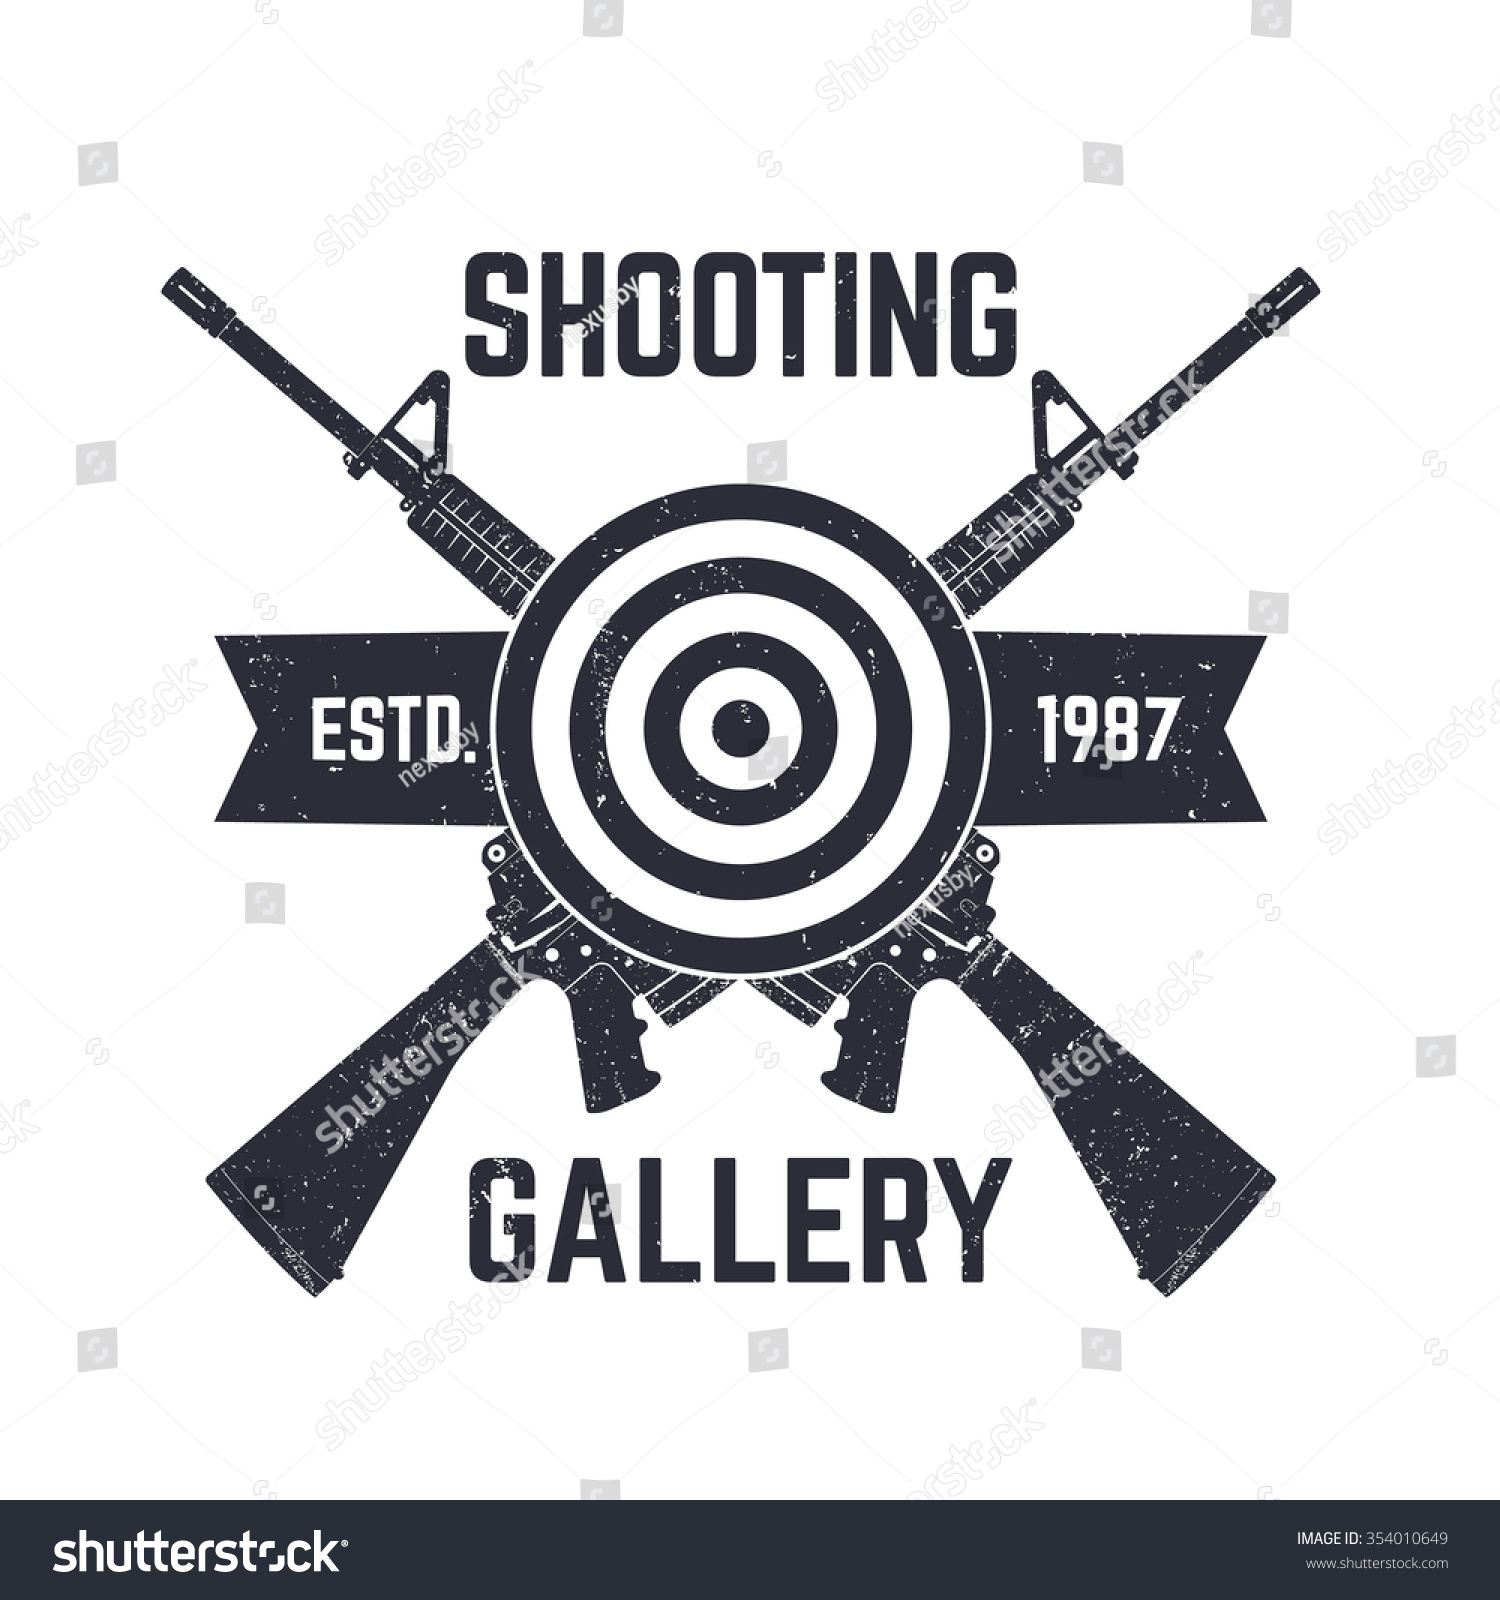 shooting gallery logo sign with crossed assault rifles